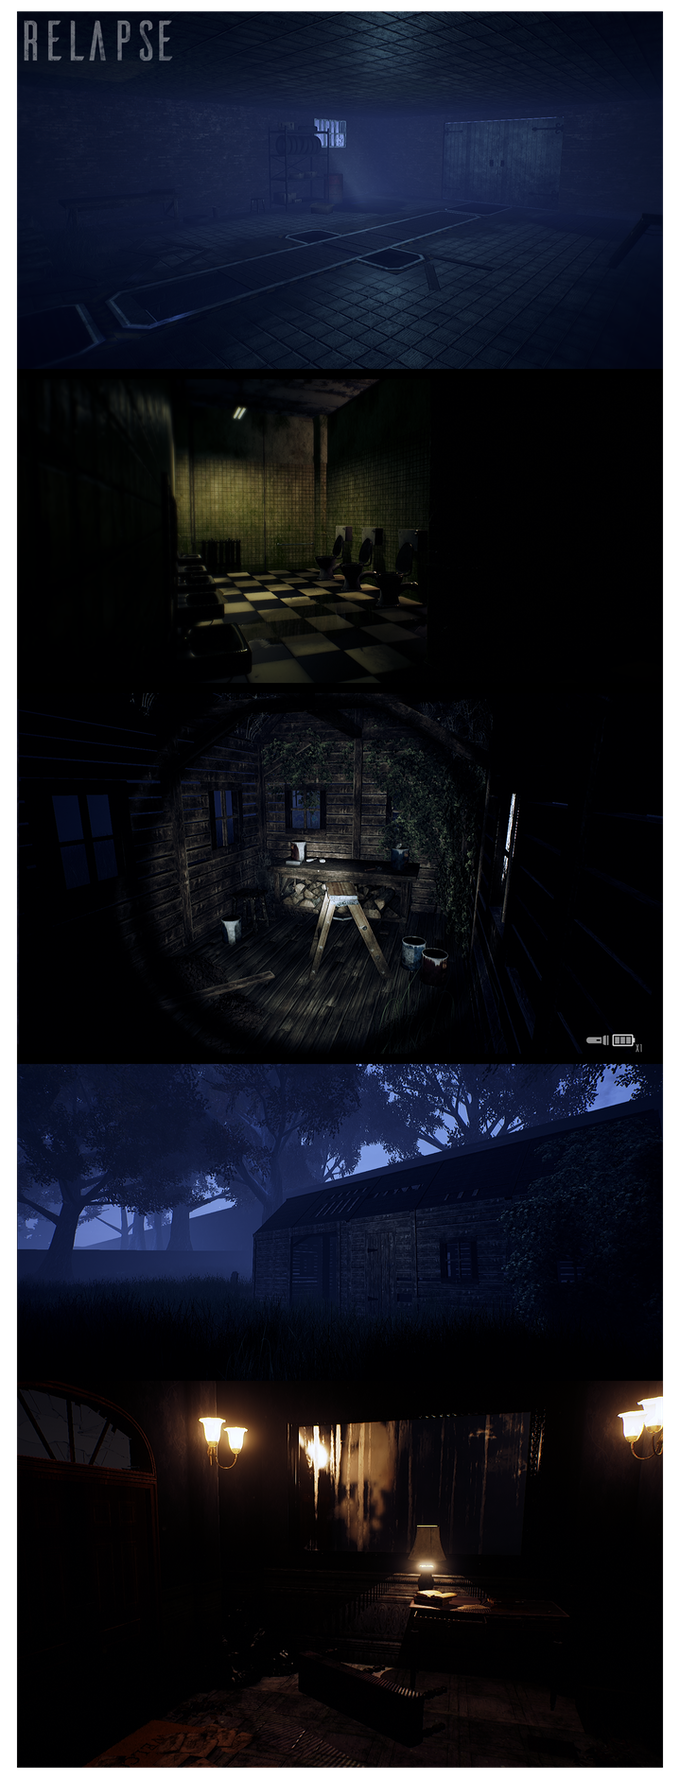 Some of the environments from Relapse